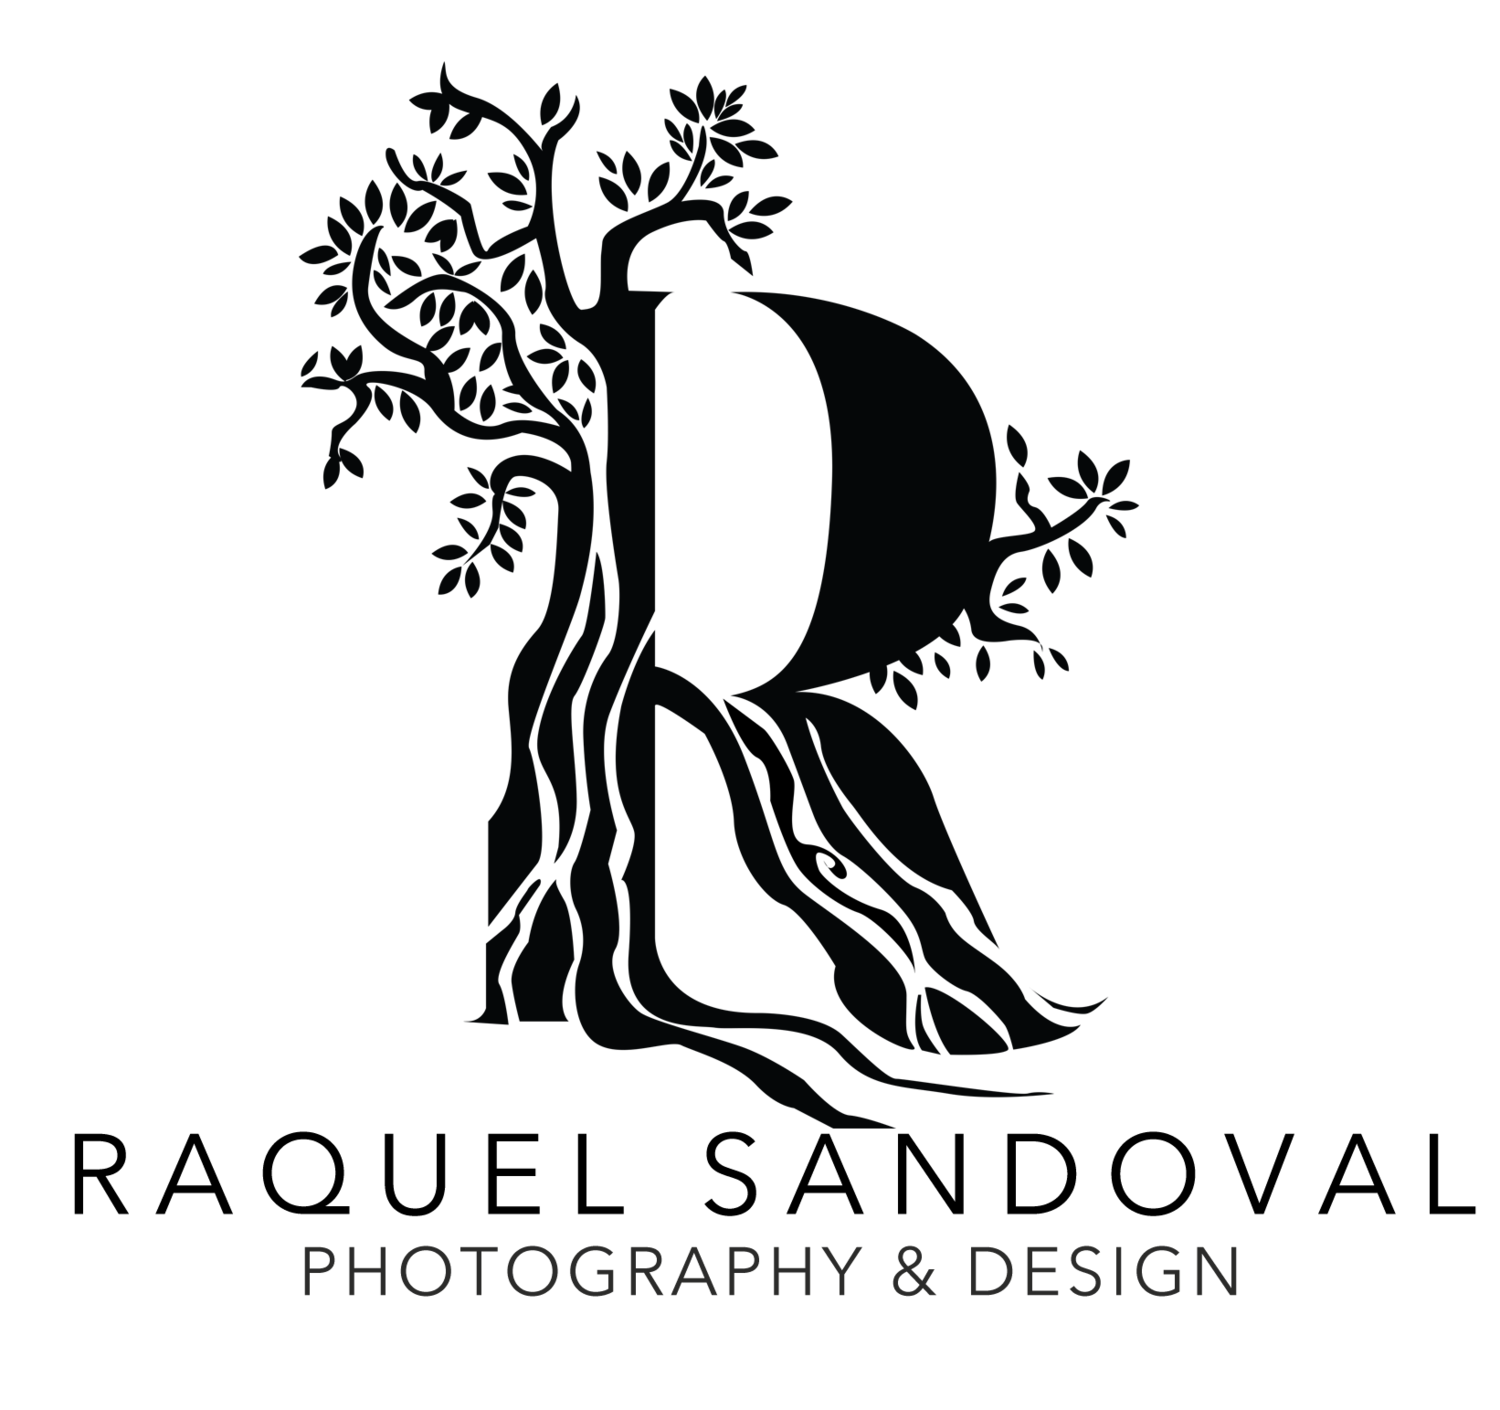 Raquel Sandoval Photography - Wedding Photography, Hochzeits Fotografin, Portraits & Design